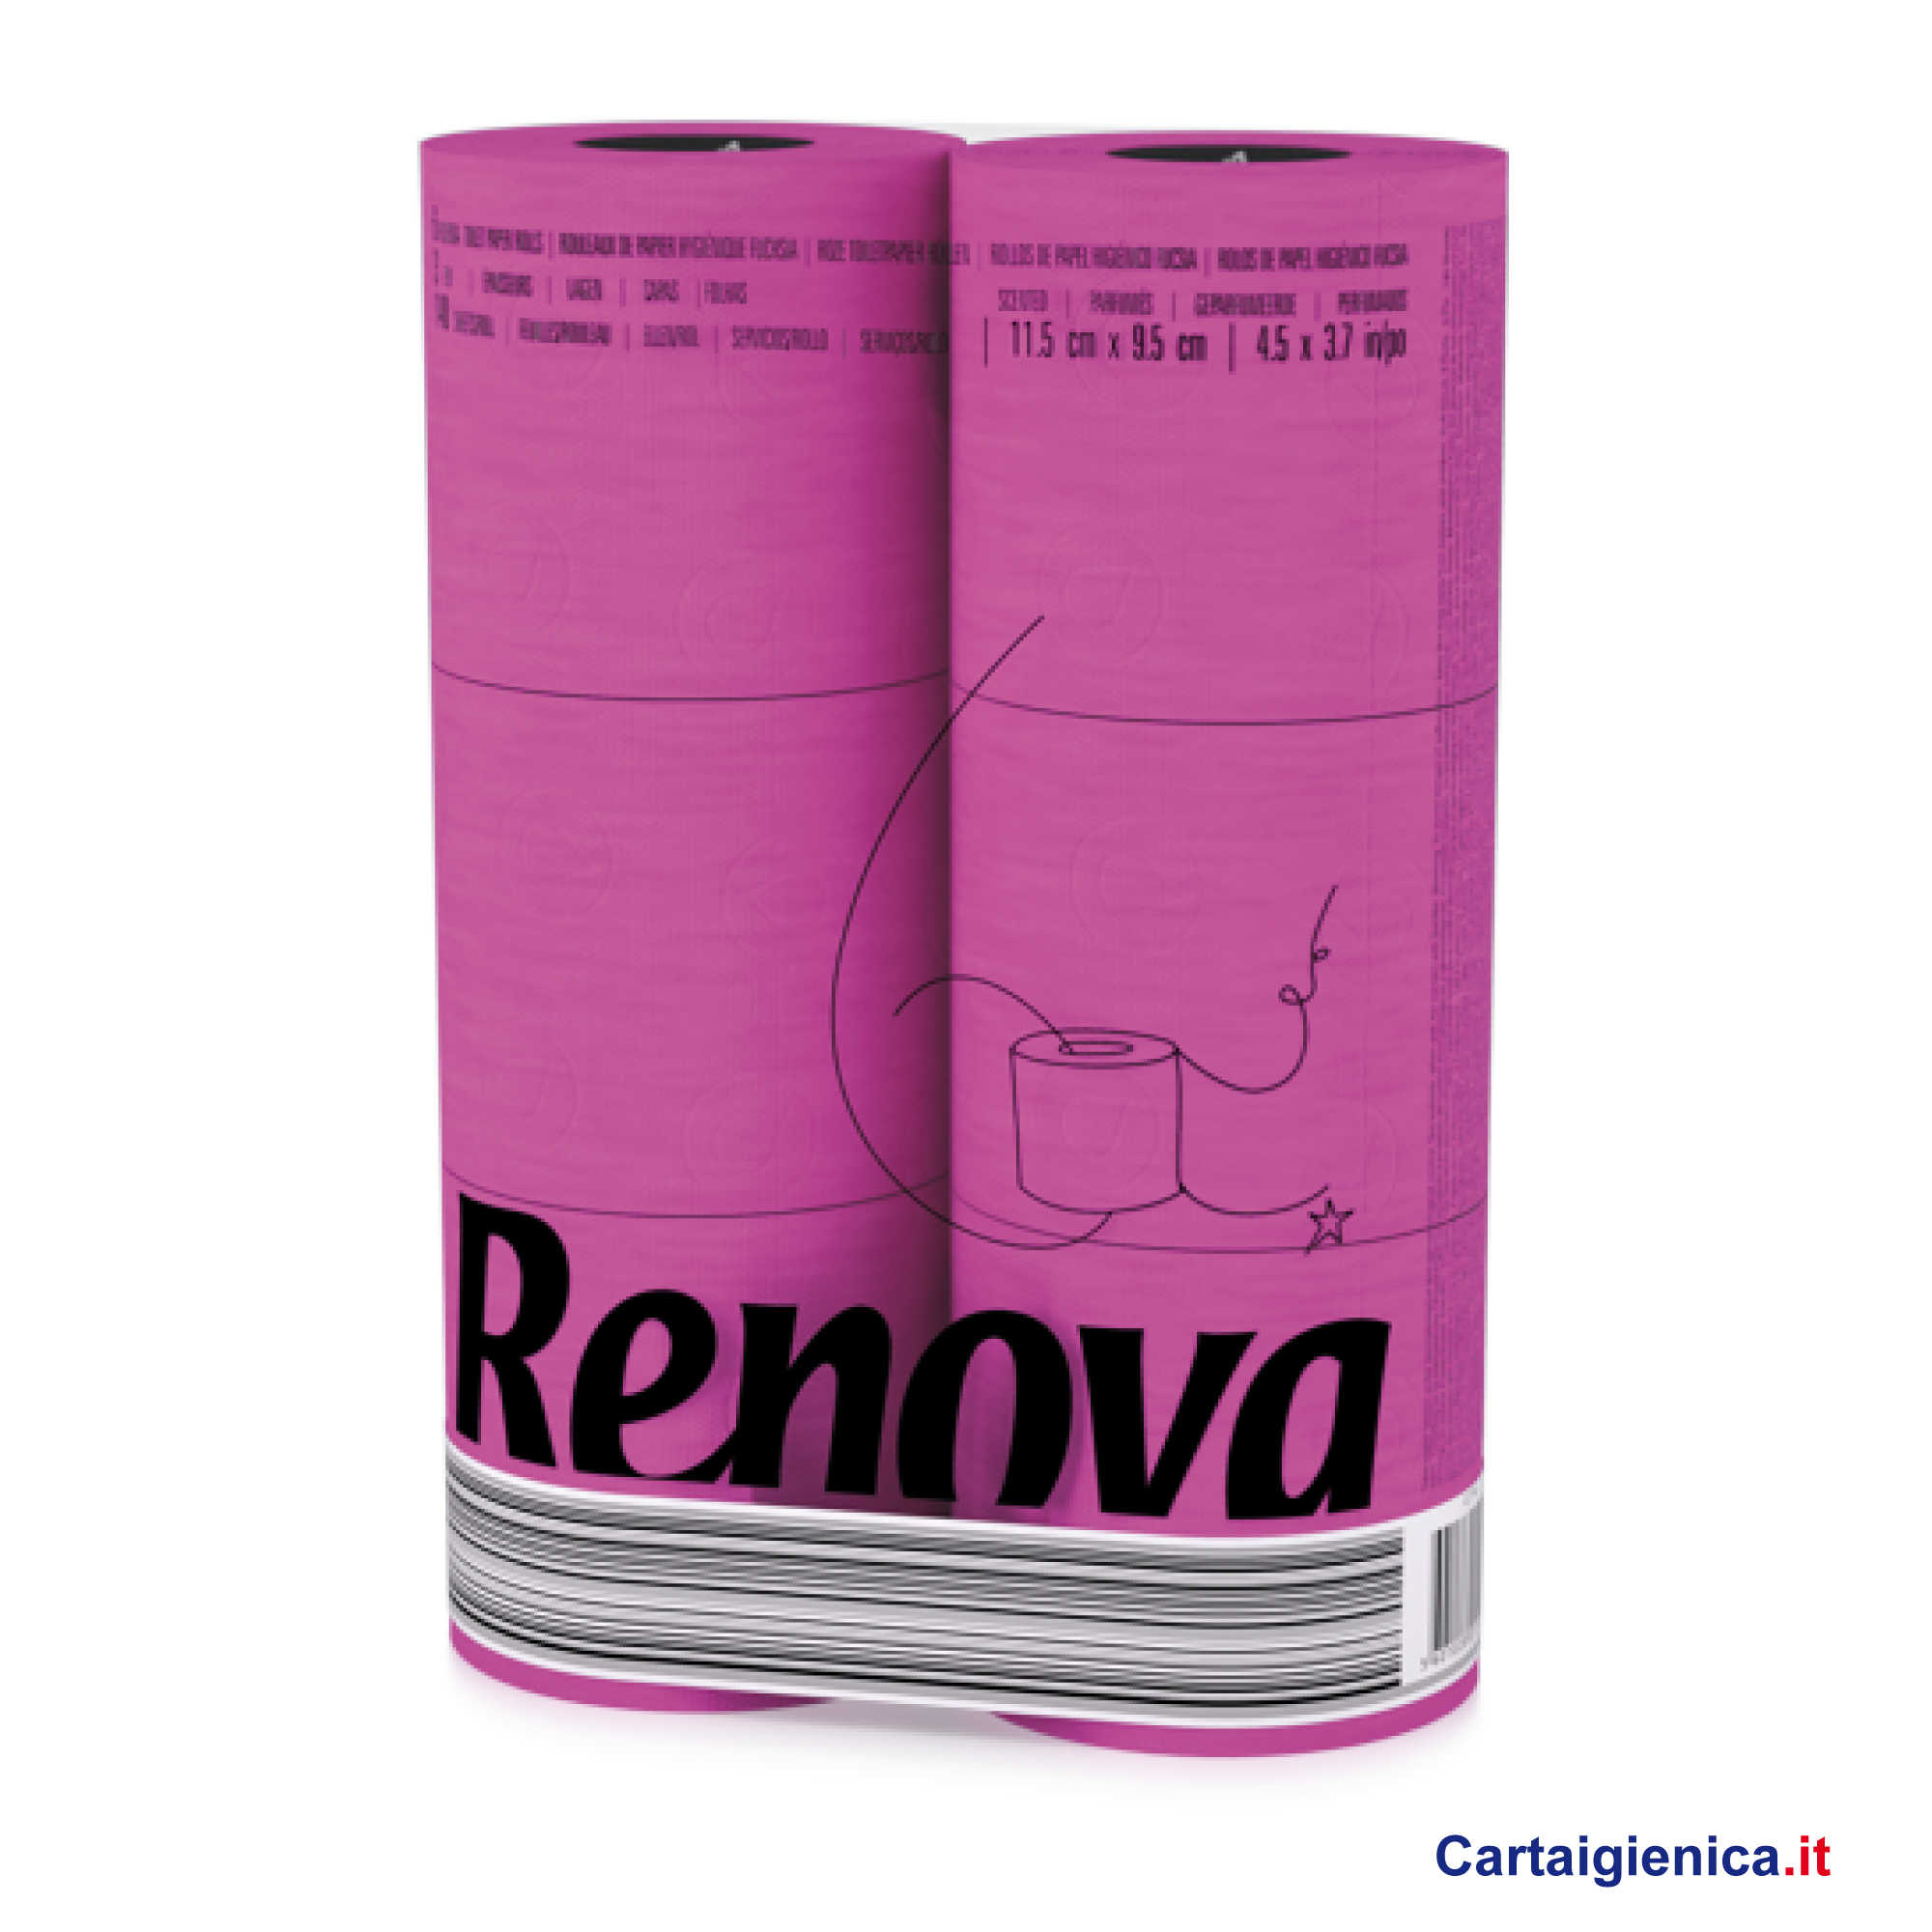 renova carta igienica colorata fuxia 6 rotoli cartaigienica.it